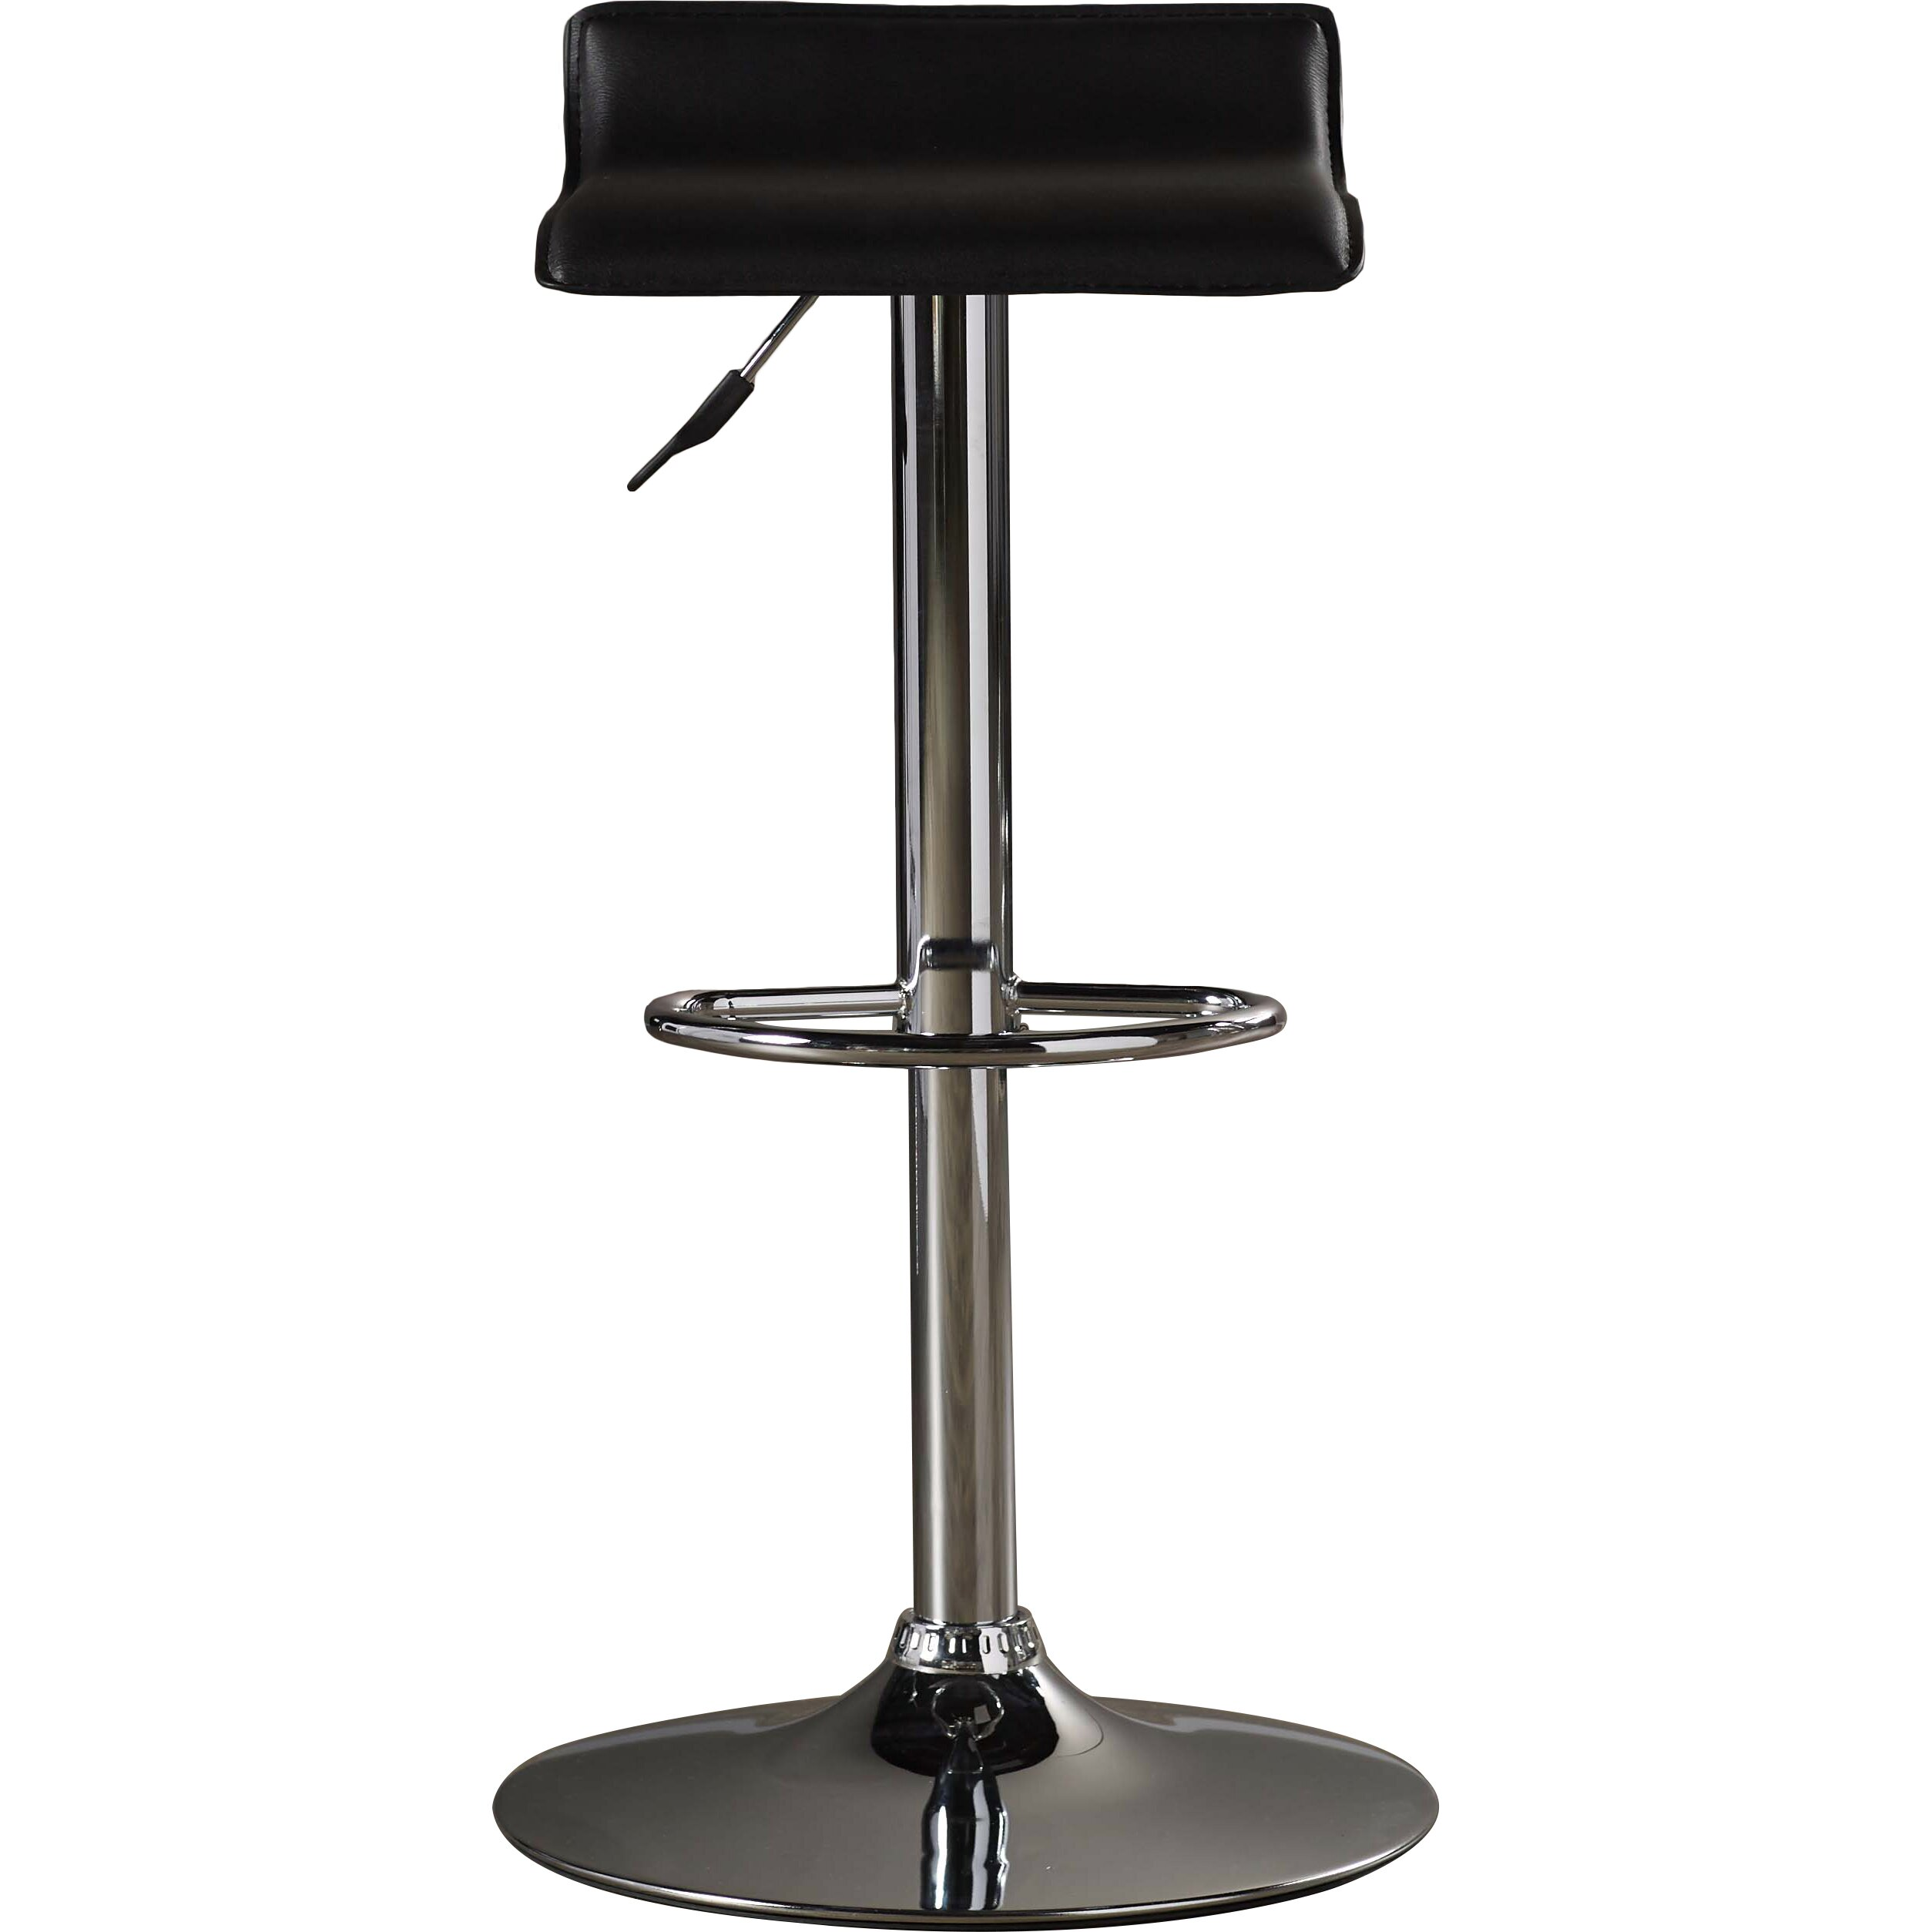 Zipcode design adjustable height swivel bar stool for Counter height swivel bar stools